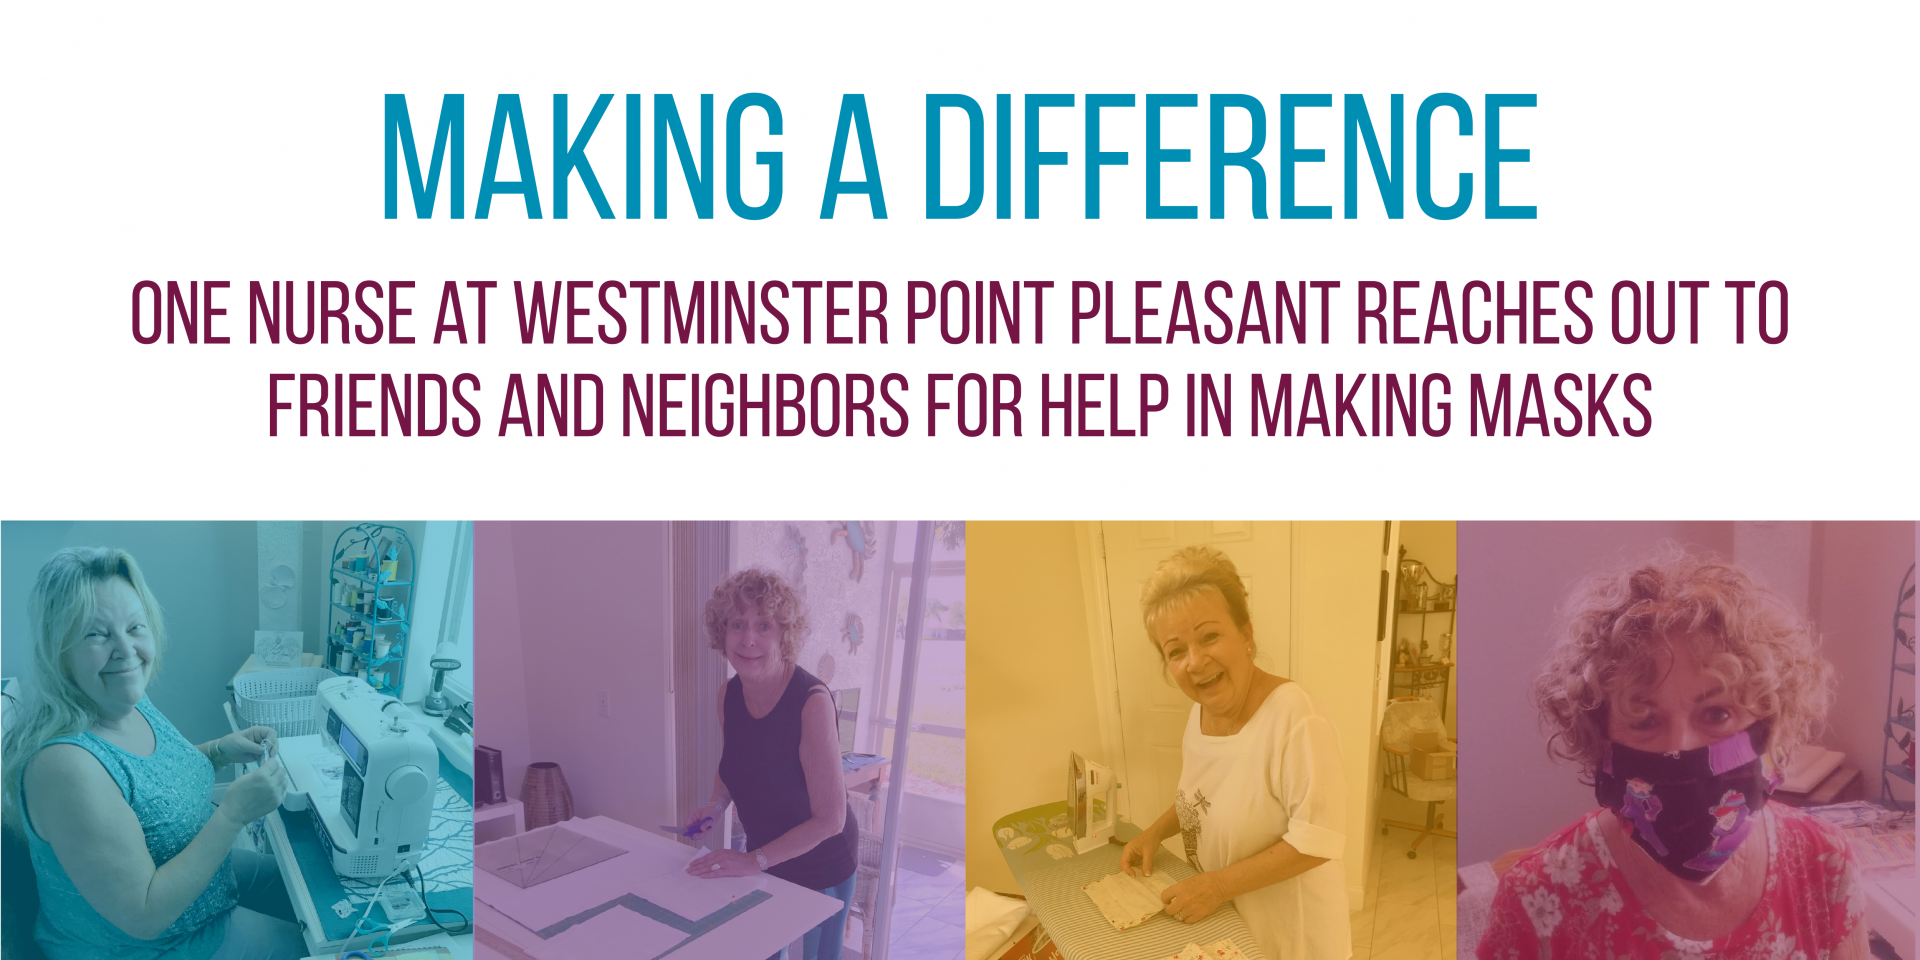 Making a Difference - One Nurse at Westminster Point Pleasant Reaches Out to Friends and Neighbors for Help in Making Masks